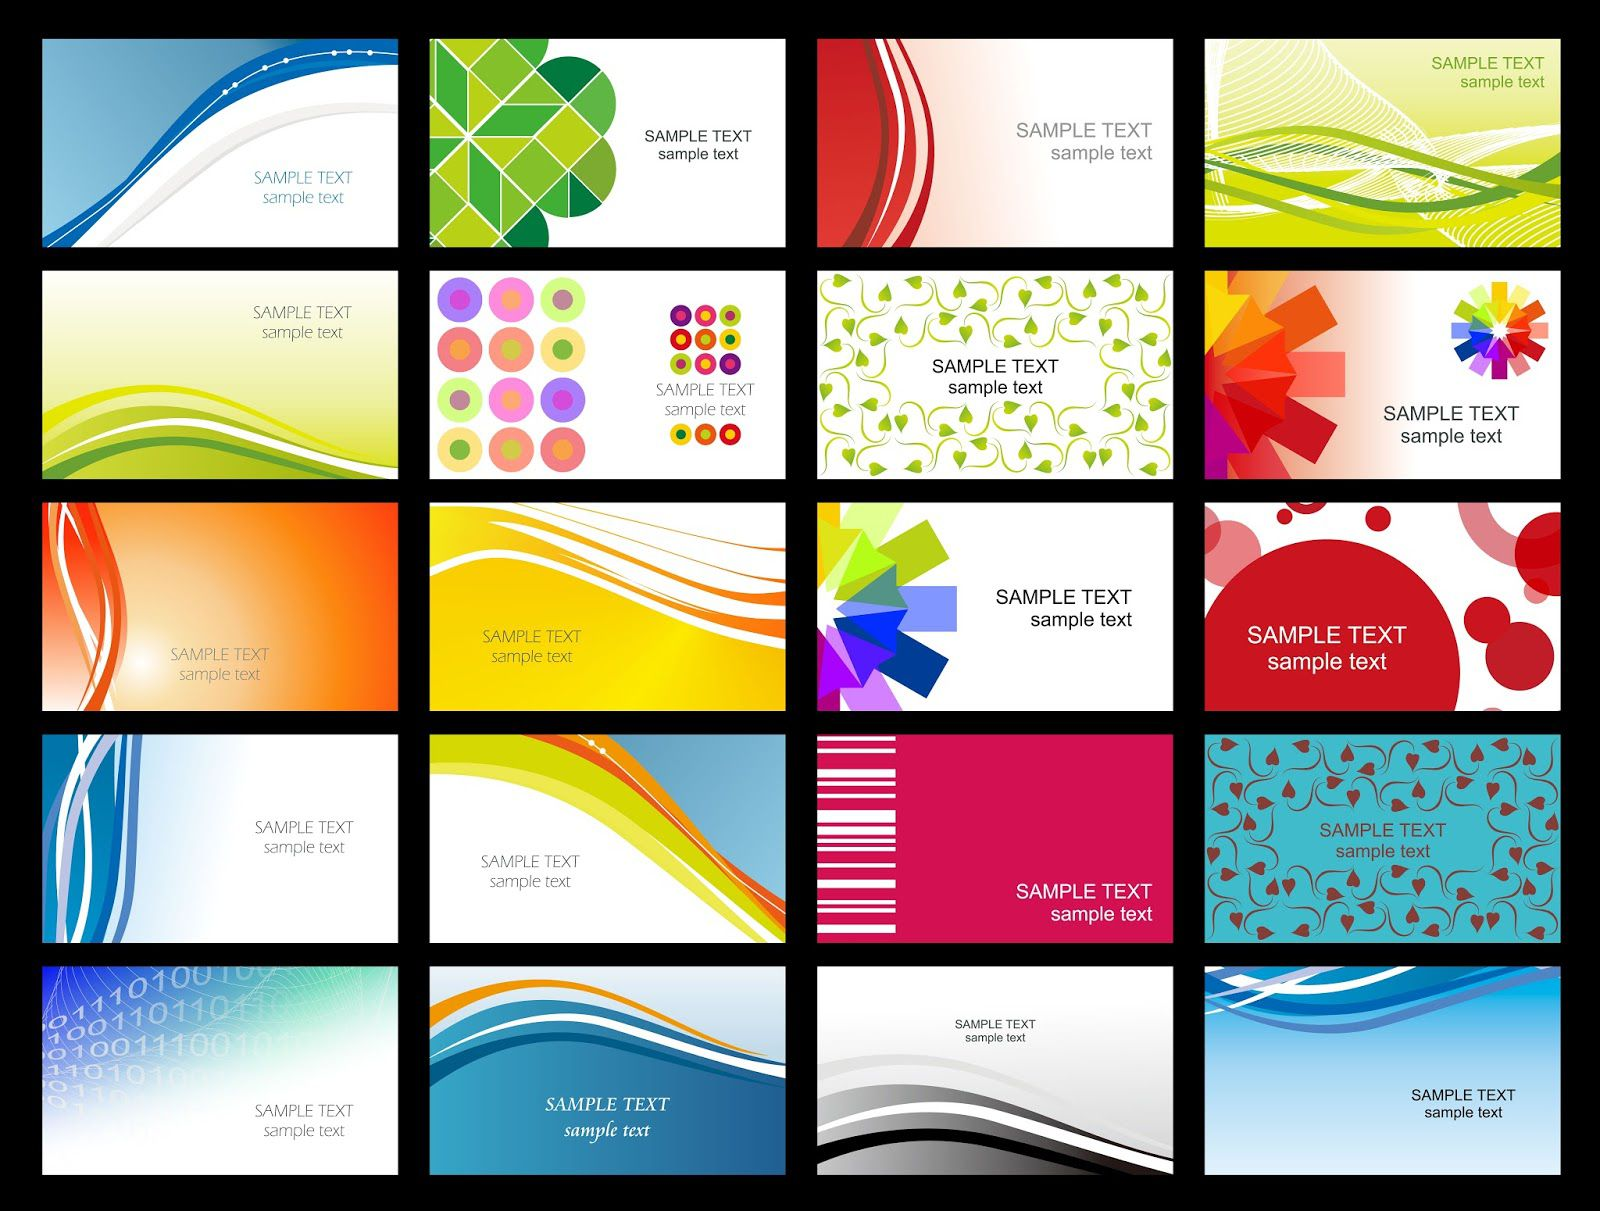 009 Formidable Free Printable Blank Busines Card Template For Word High Def Full